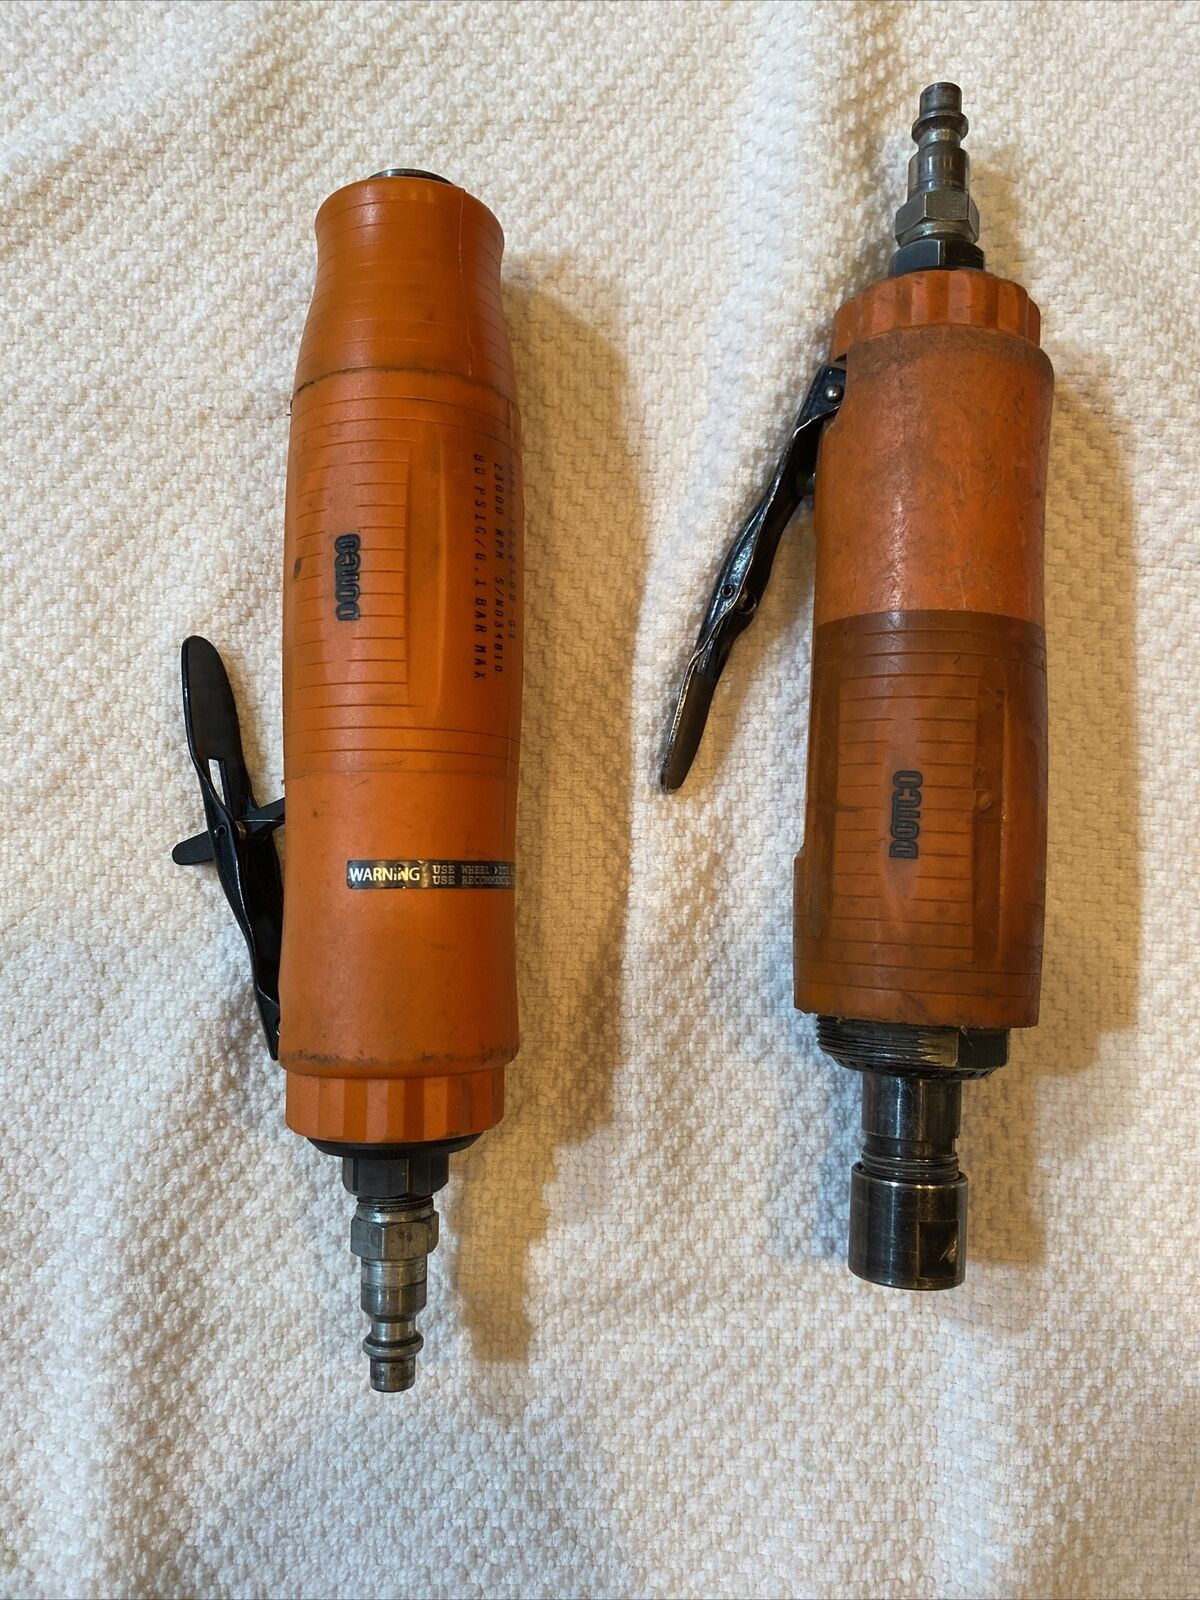 Dotco 12L2500-01 Pneumatic Grinders. Lot Of 2.. Buy it now for 270.00